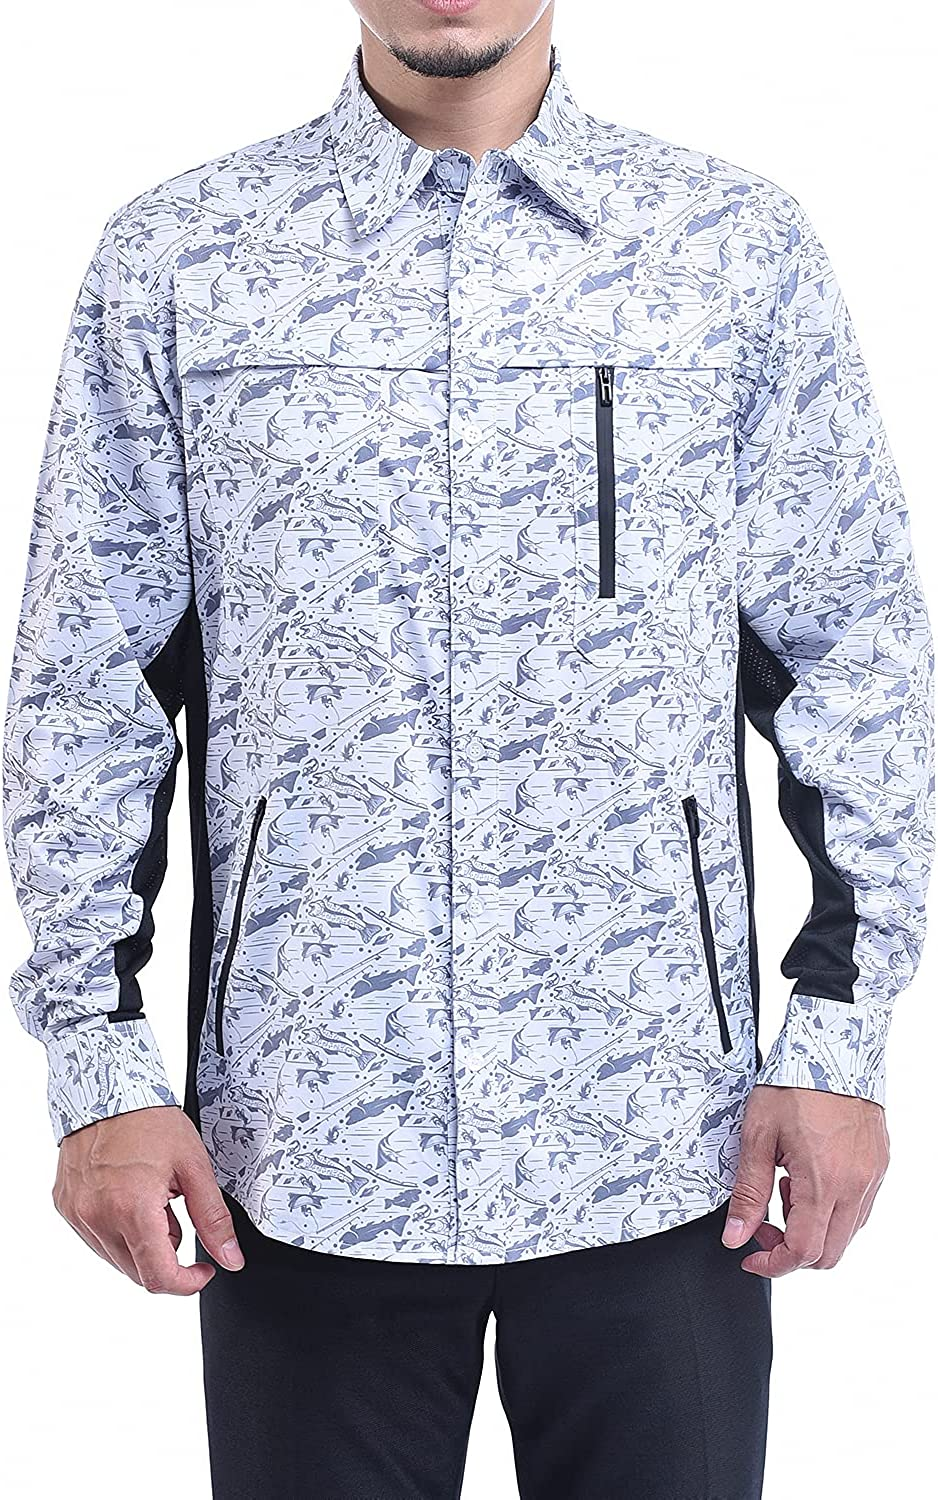 KOOFIN GEAR Men's Performance Fishing Outdoor Vented Recre Limited Special Wholesale Price Shirt